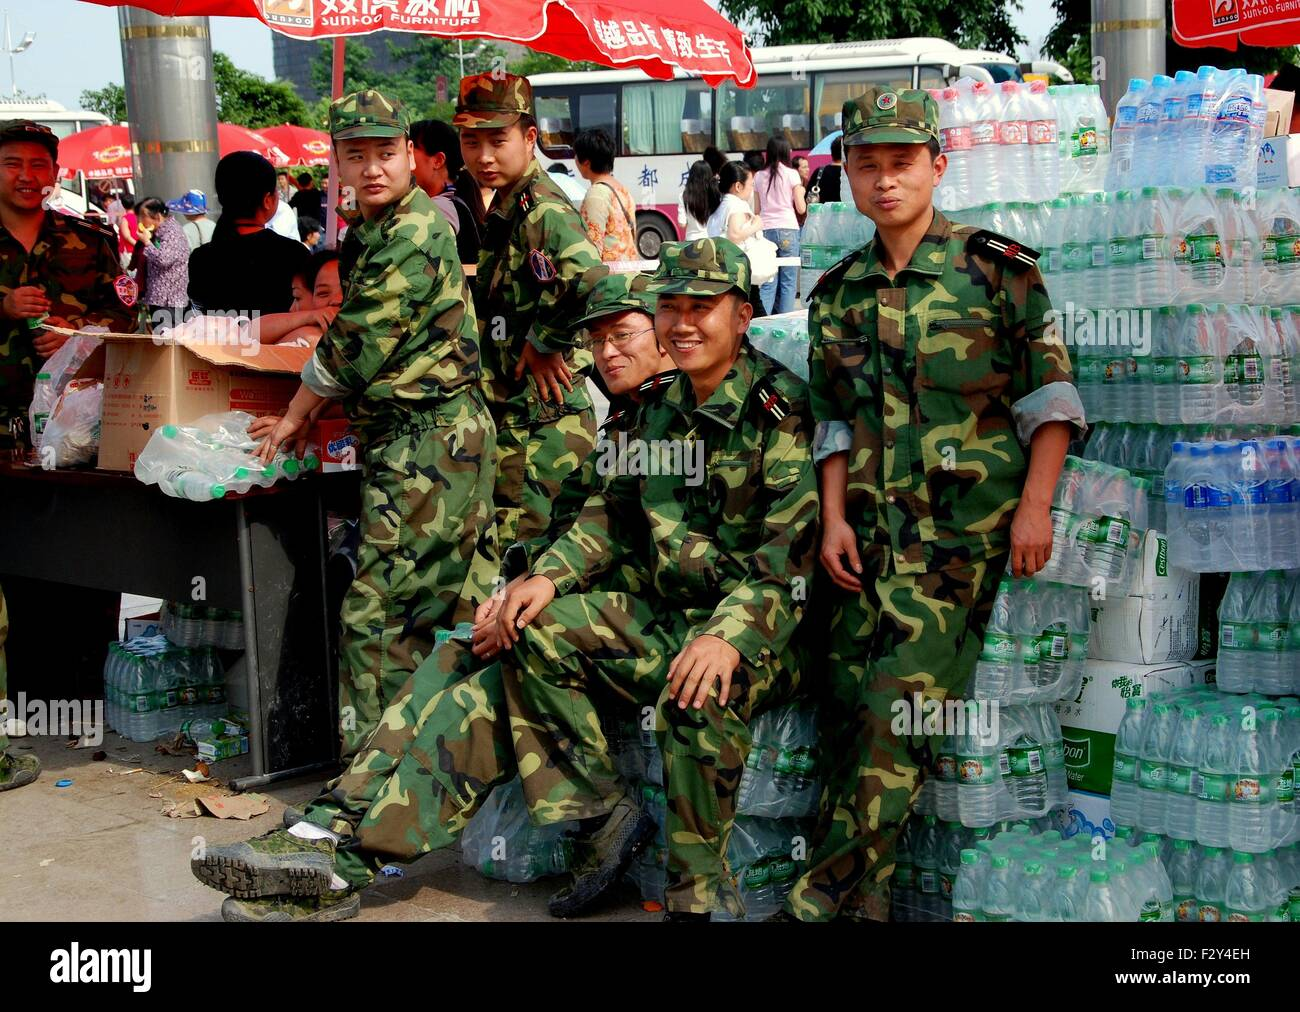 Pengzhou, China:  Chinese soldiers standing with donated bottled water for the victims of the 5-12-08 Sichuan earthquake - Stock Image